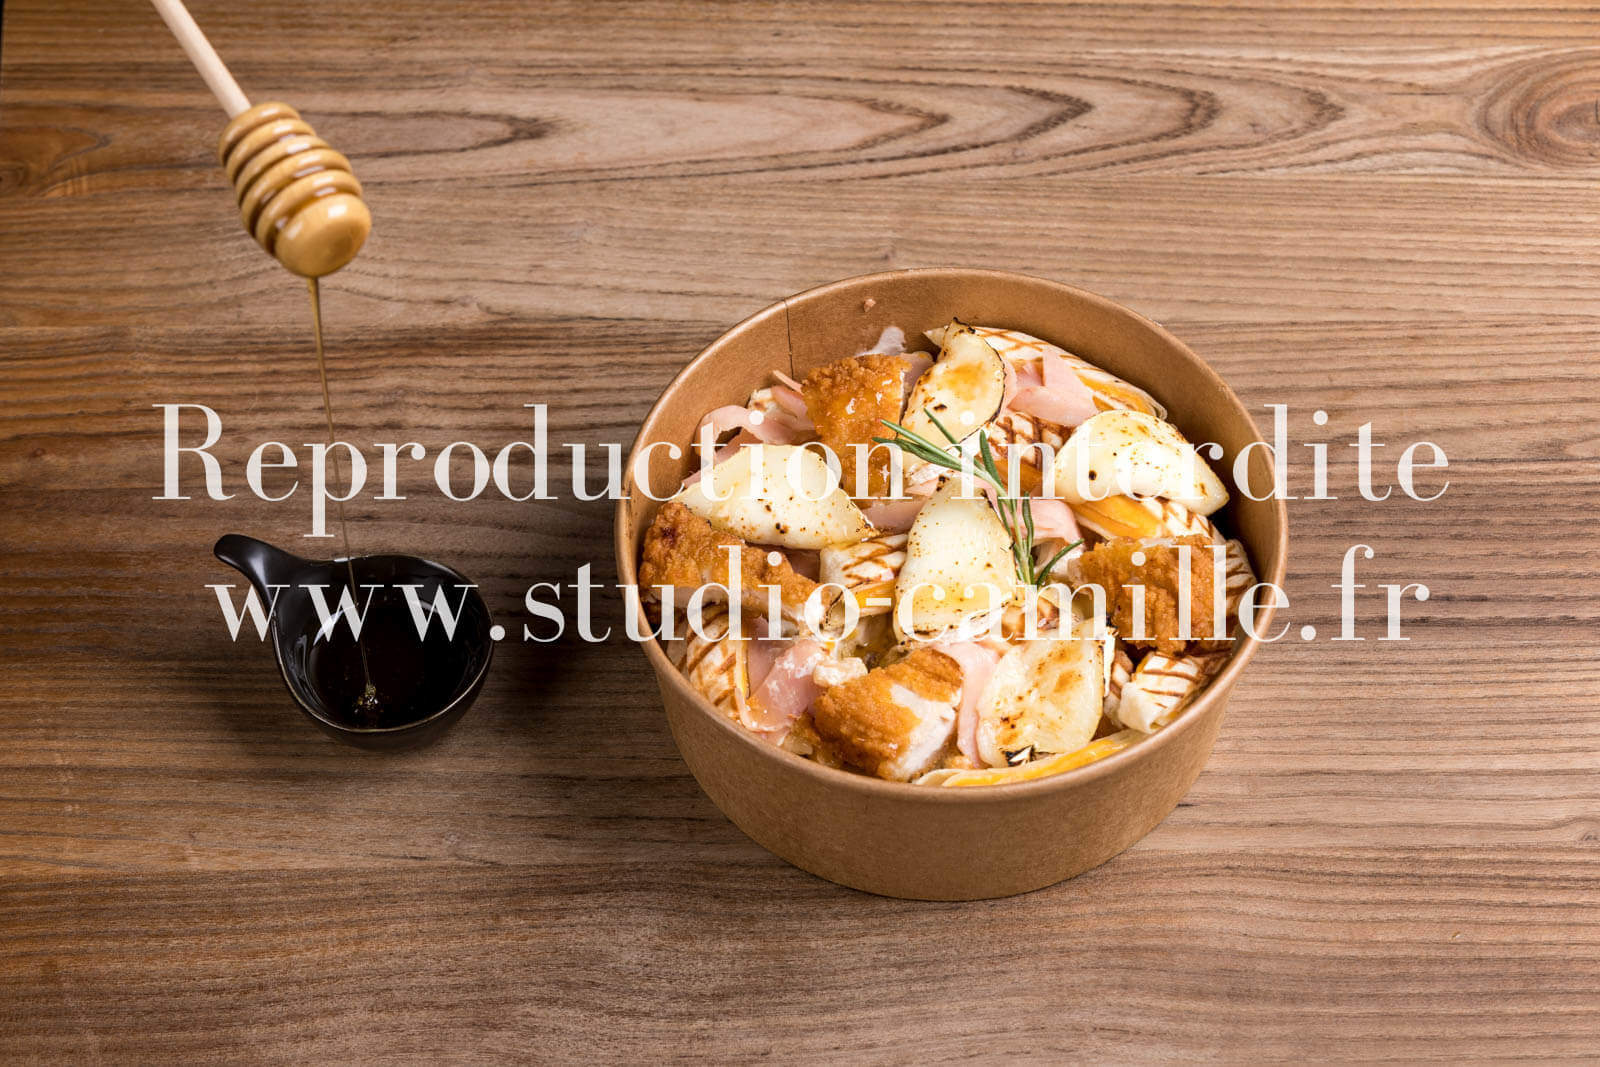 photographe tacos montpellier culinaire kebab